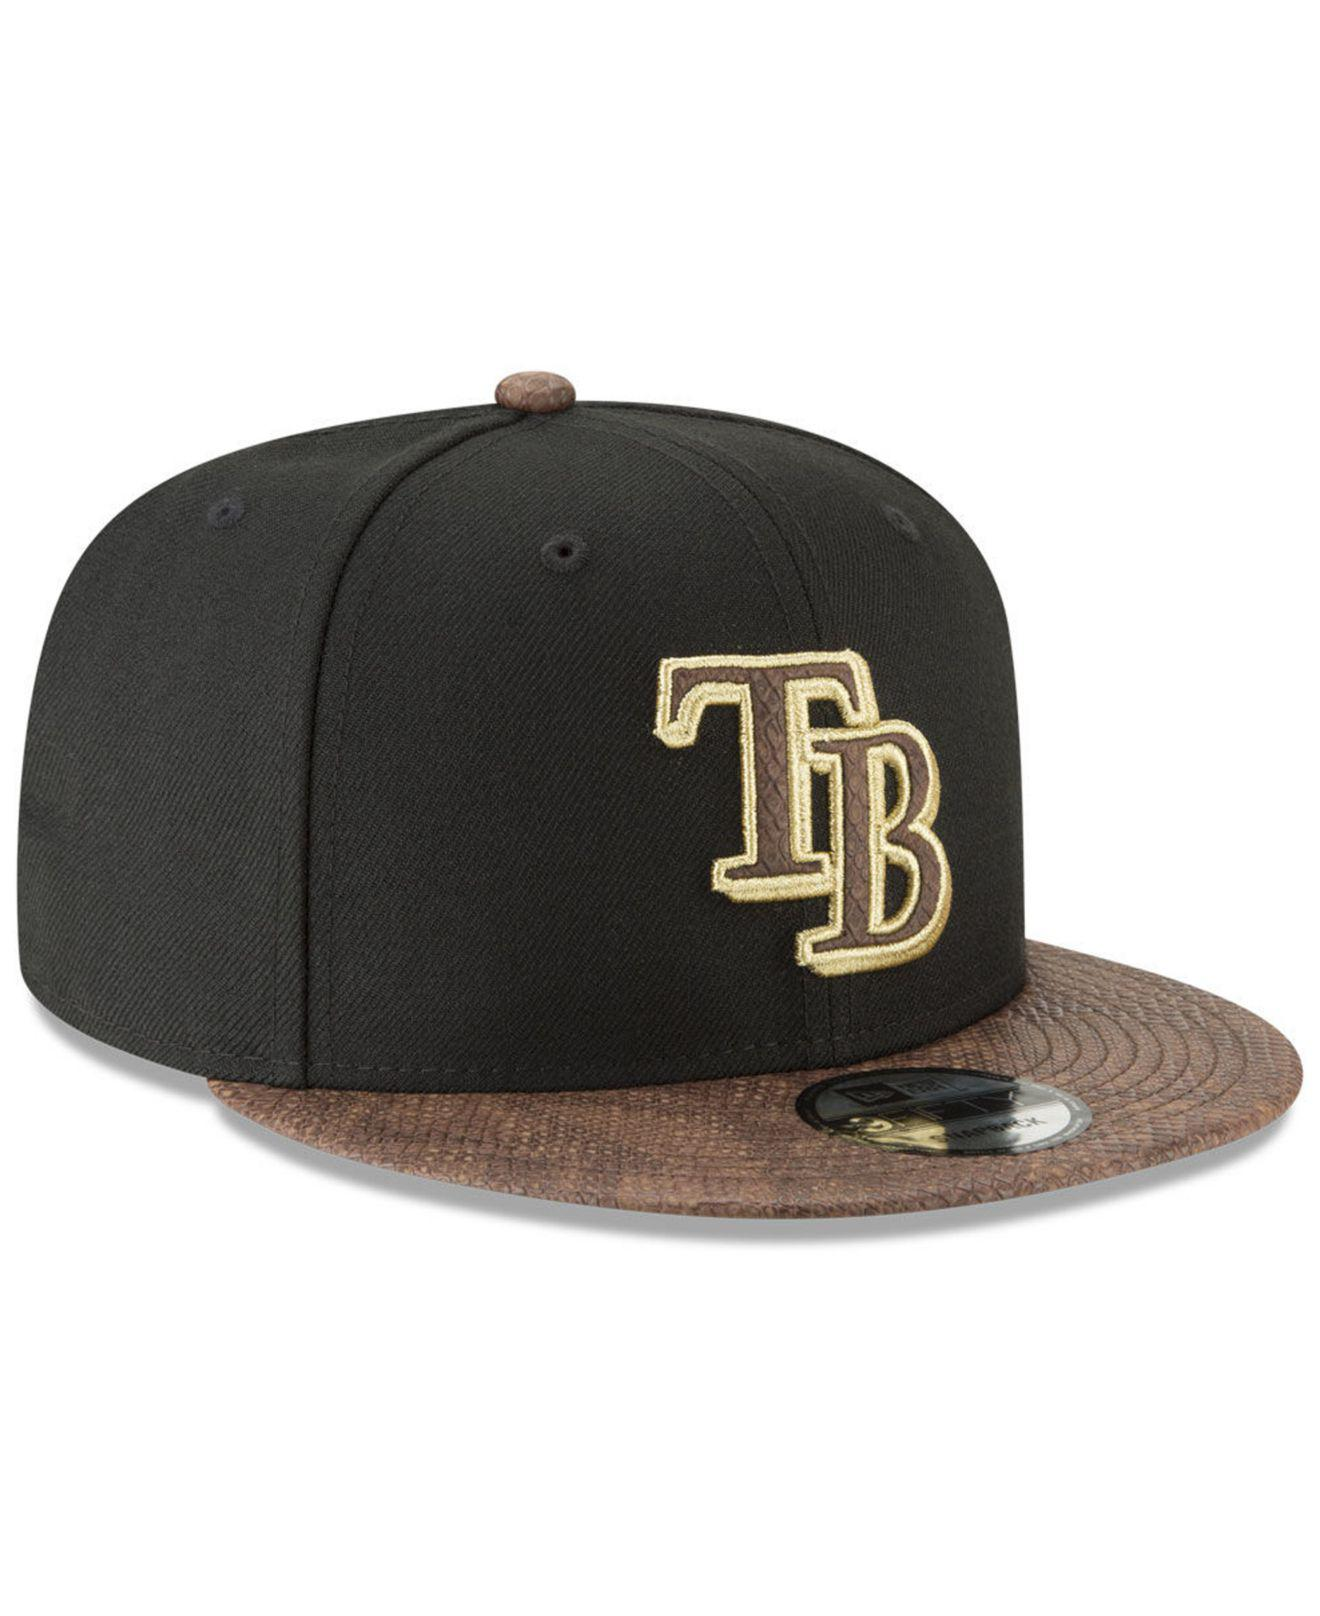 the latest e43f1 2deb1 ... Tampa Bay Rays Gold Snake 9fifty Snapback Cap for Men - Lyst. View  fullscreen